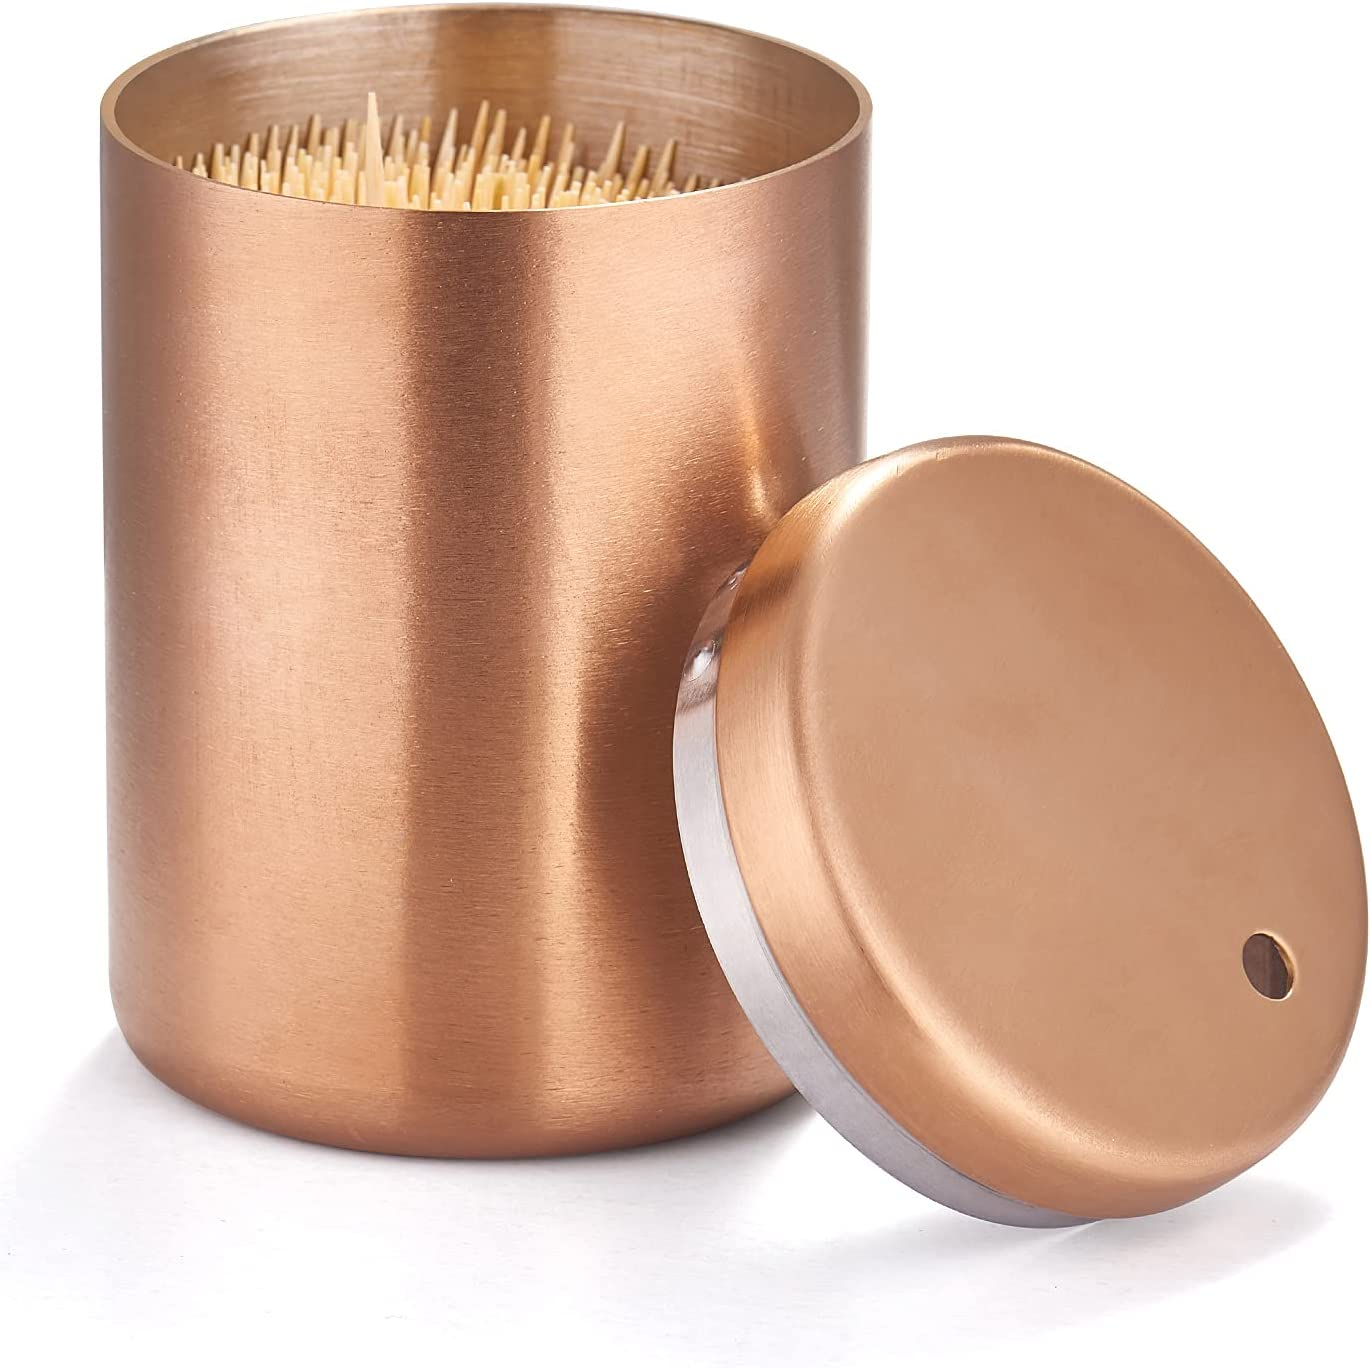 Cheap bargain Toothpick Holder Stainless Steel Di Metal Rose Max 64% OFF Golden